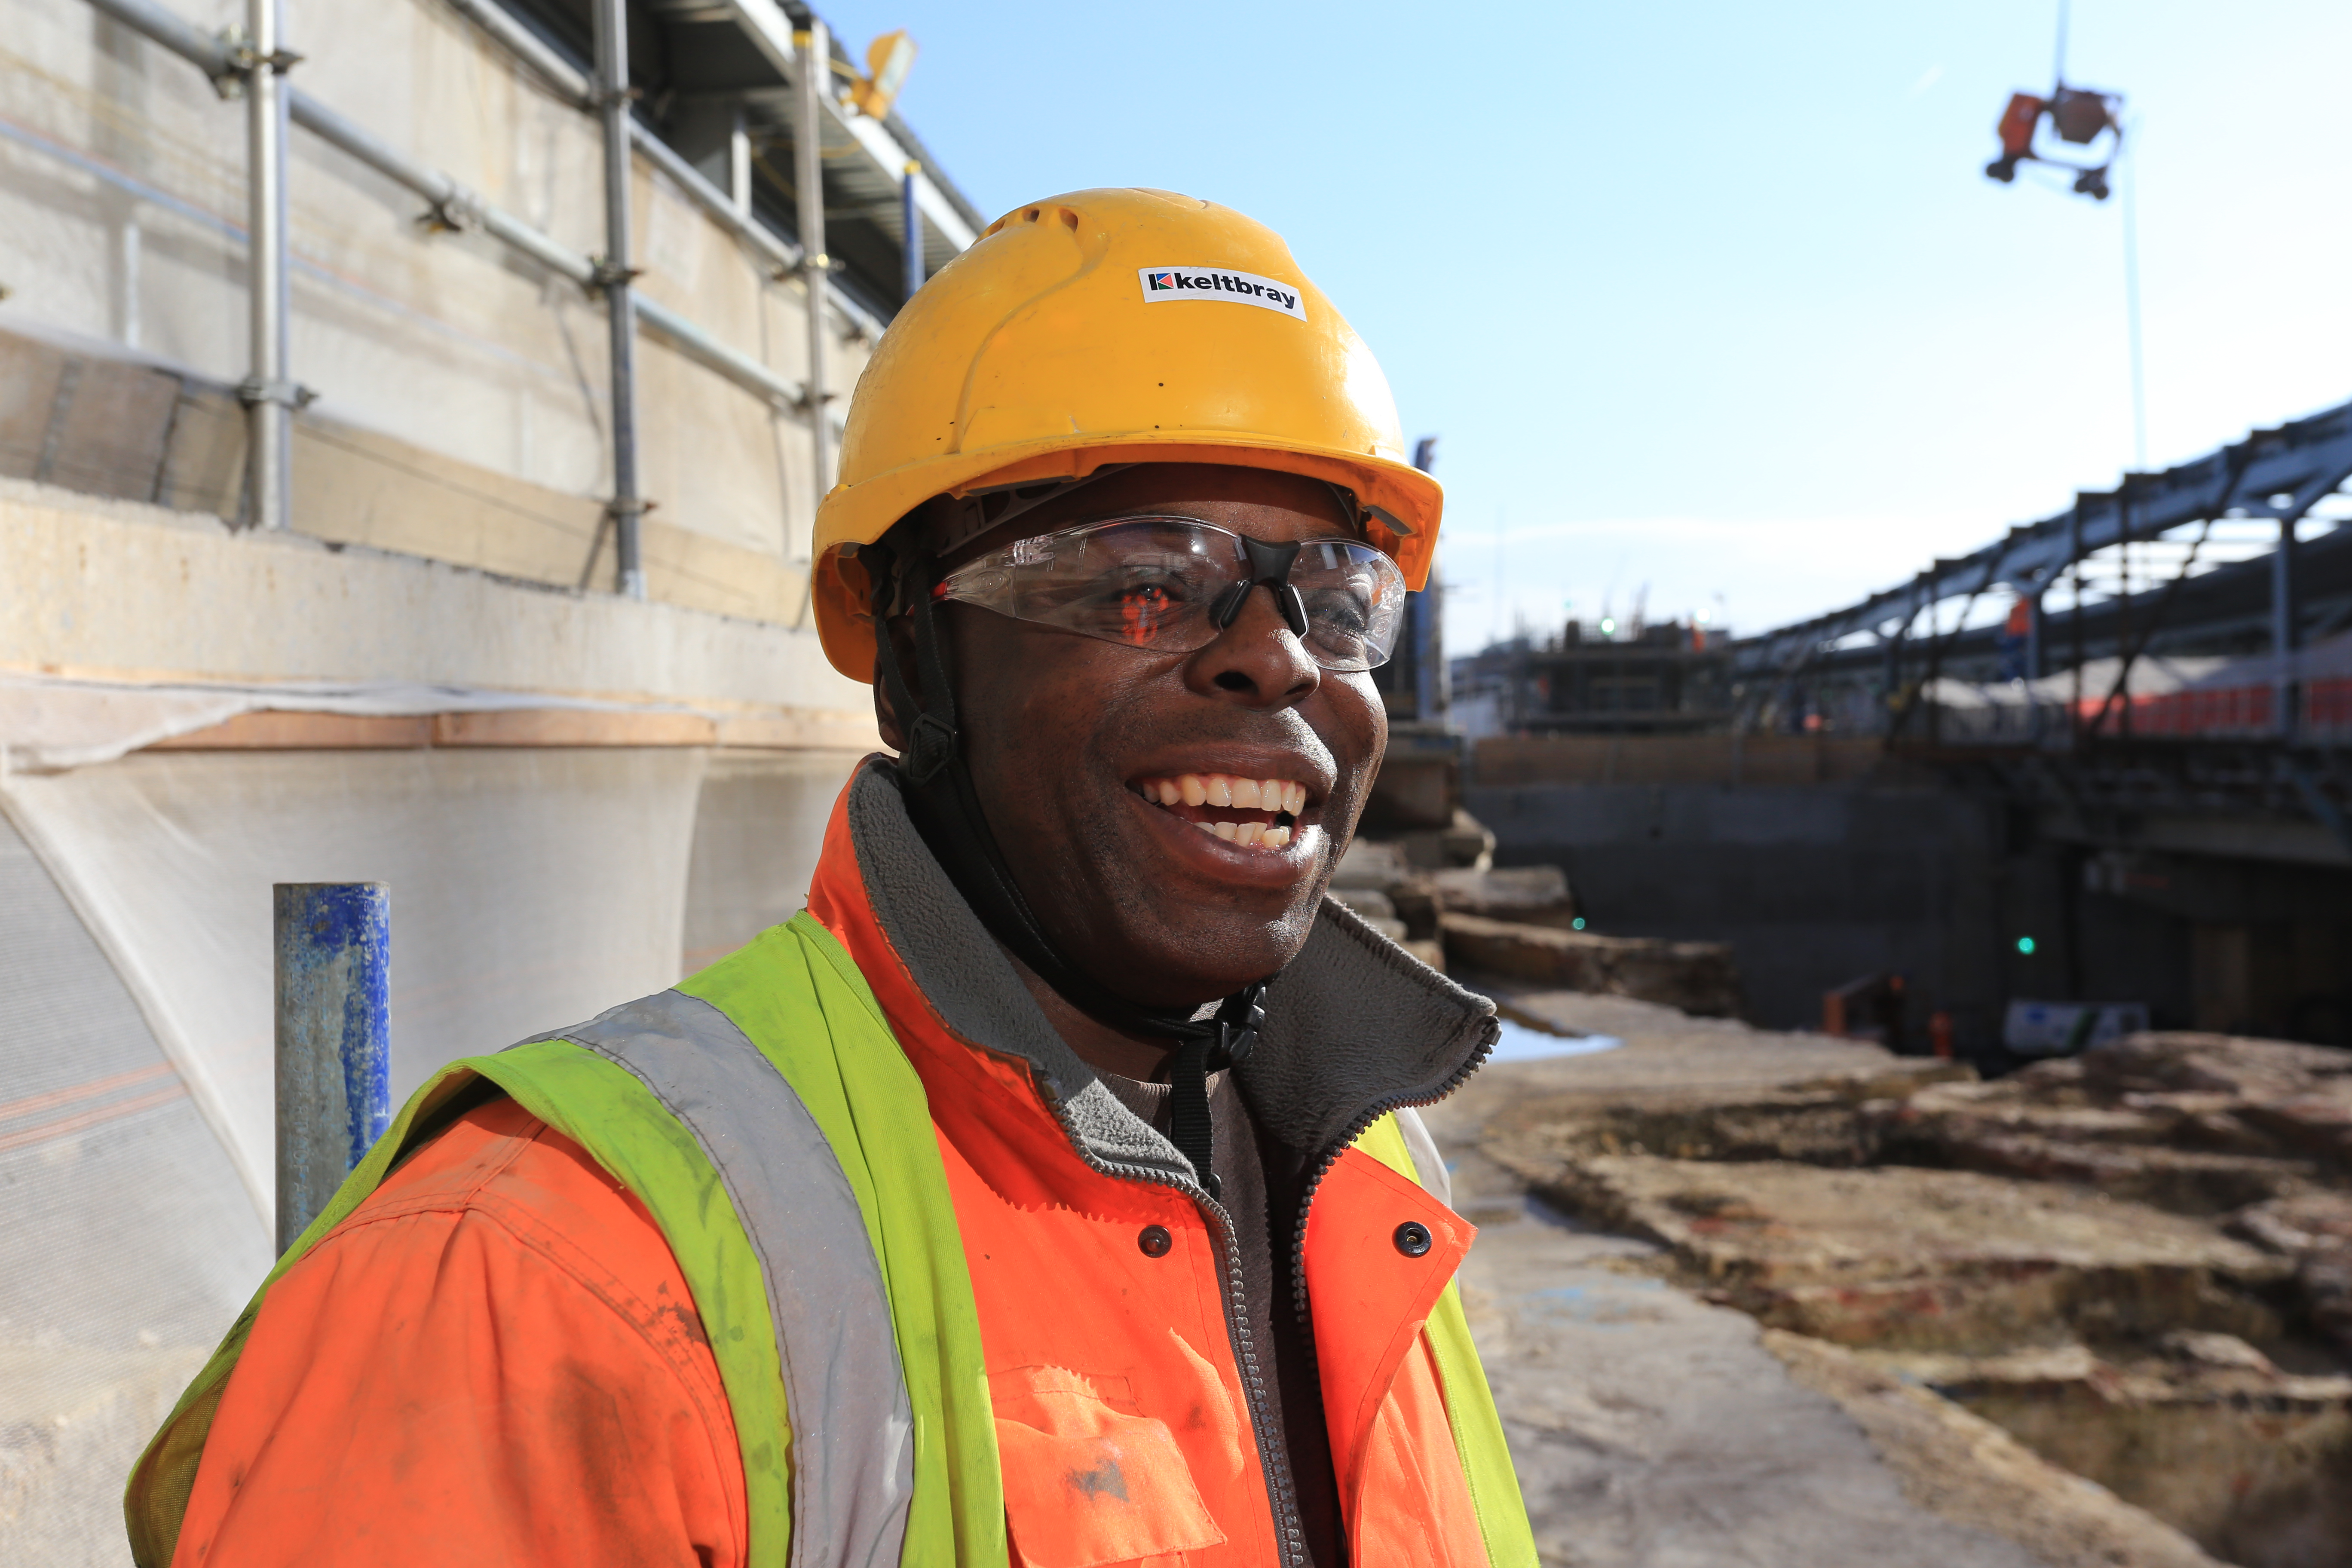 Construction employee at Costain